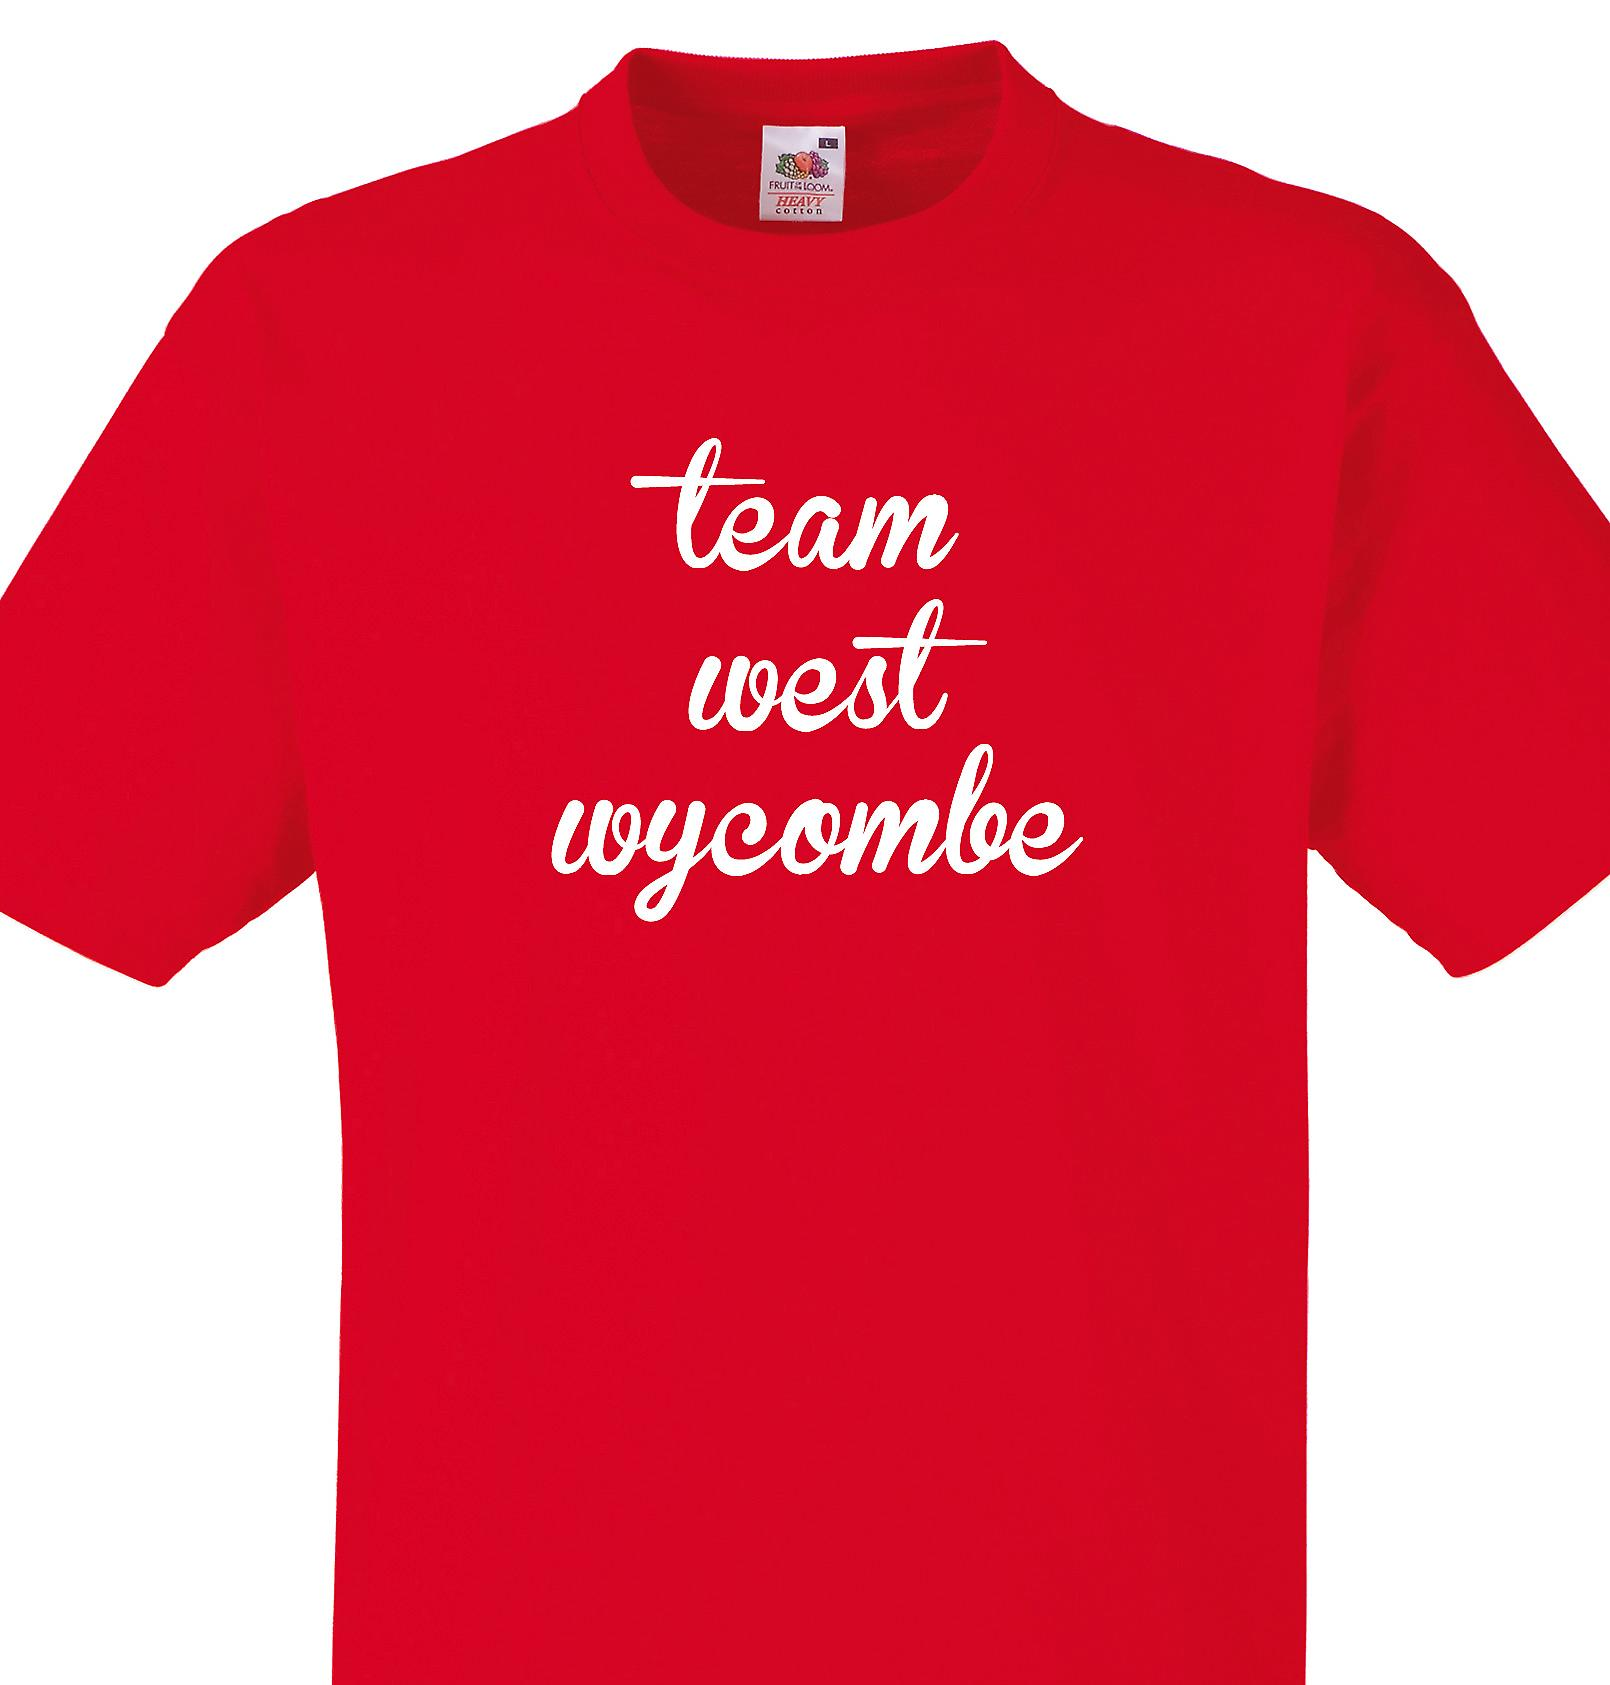 Team West wycombe Red T shirt